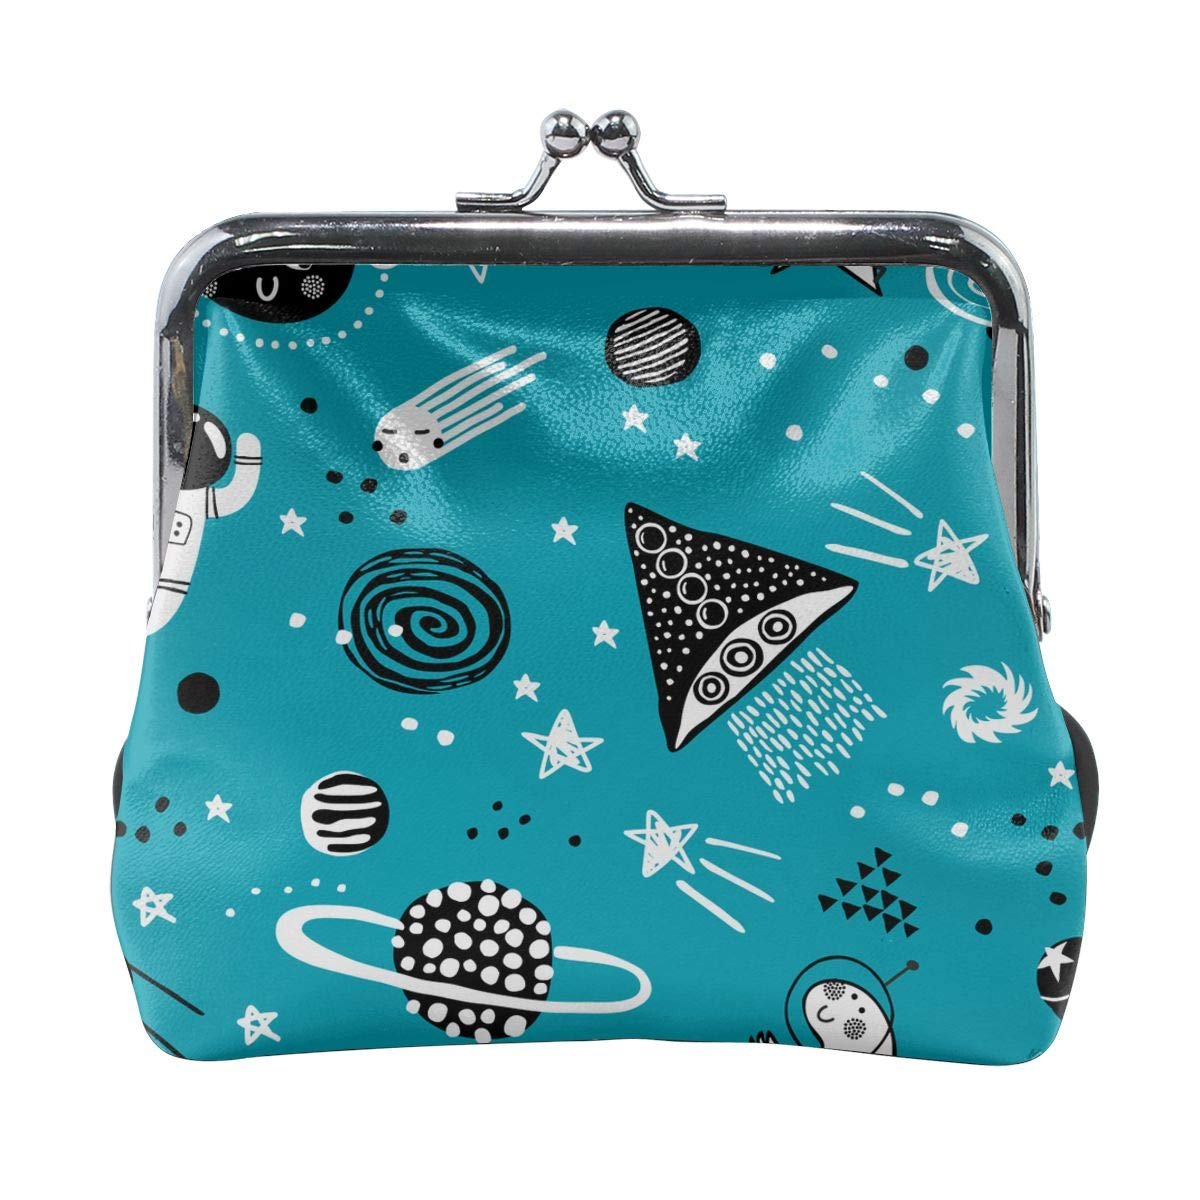 Planets Stars Astronaut And Spaceship Coin Purses Vintage Pouch Kiss-lock Change Purse Wallets